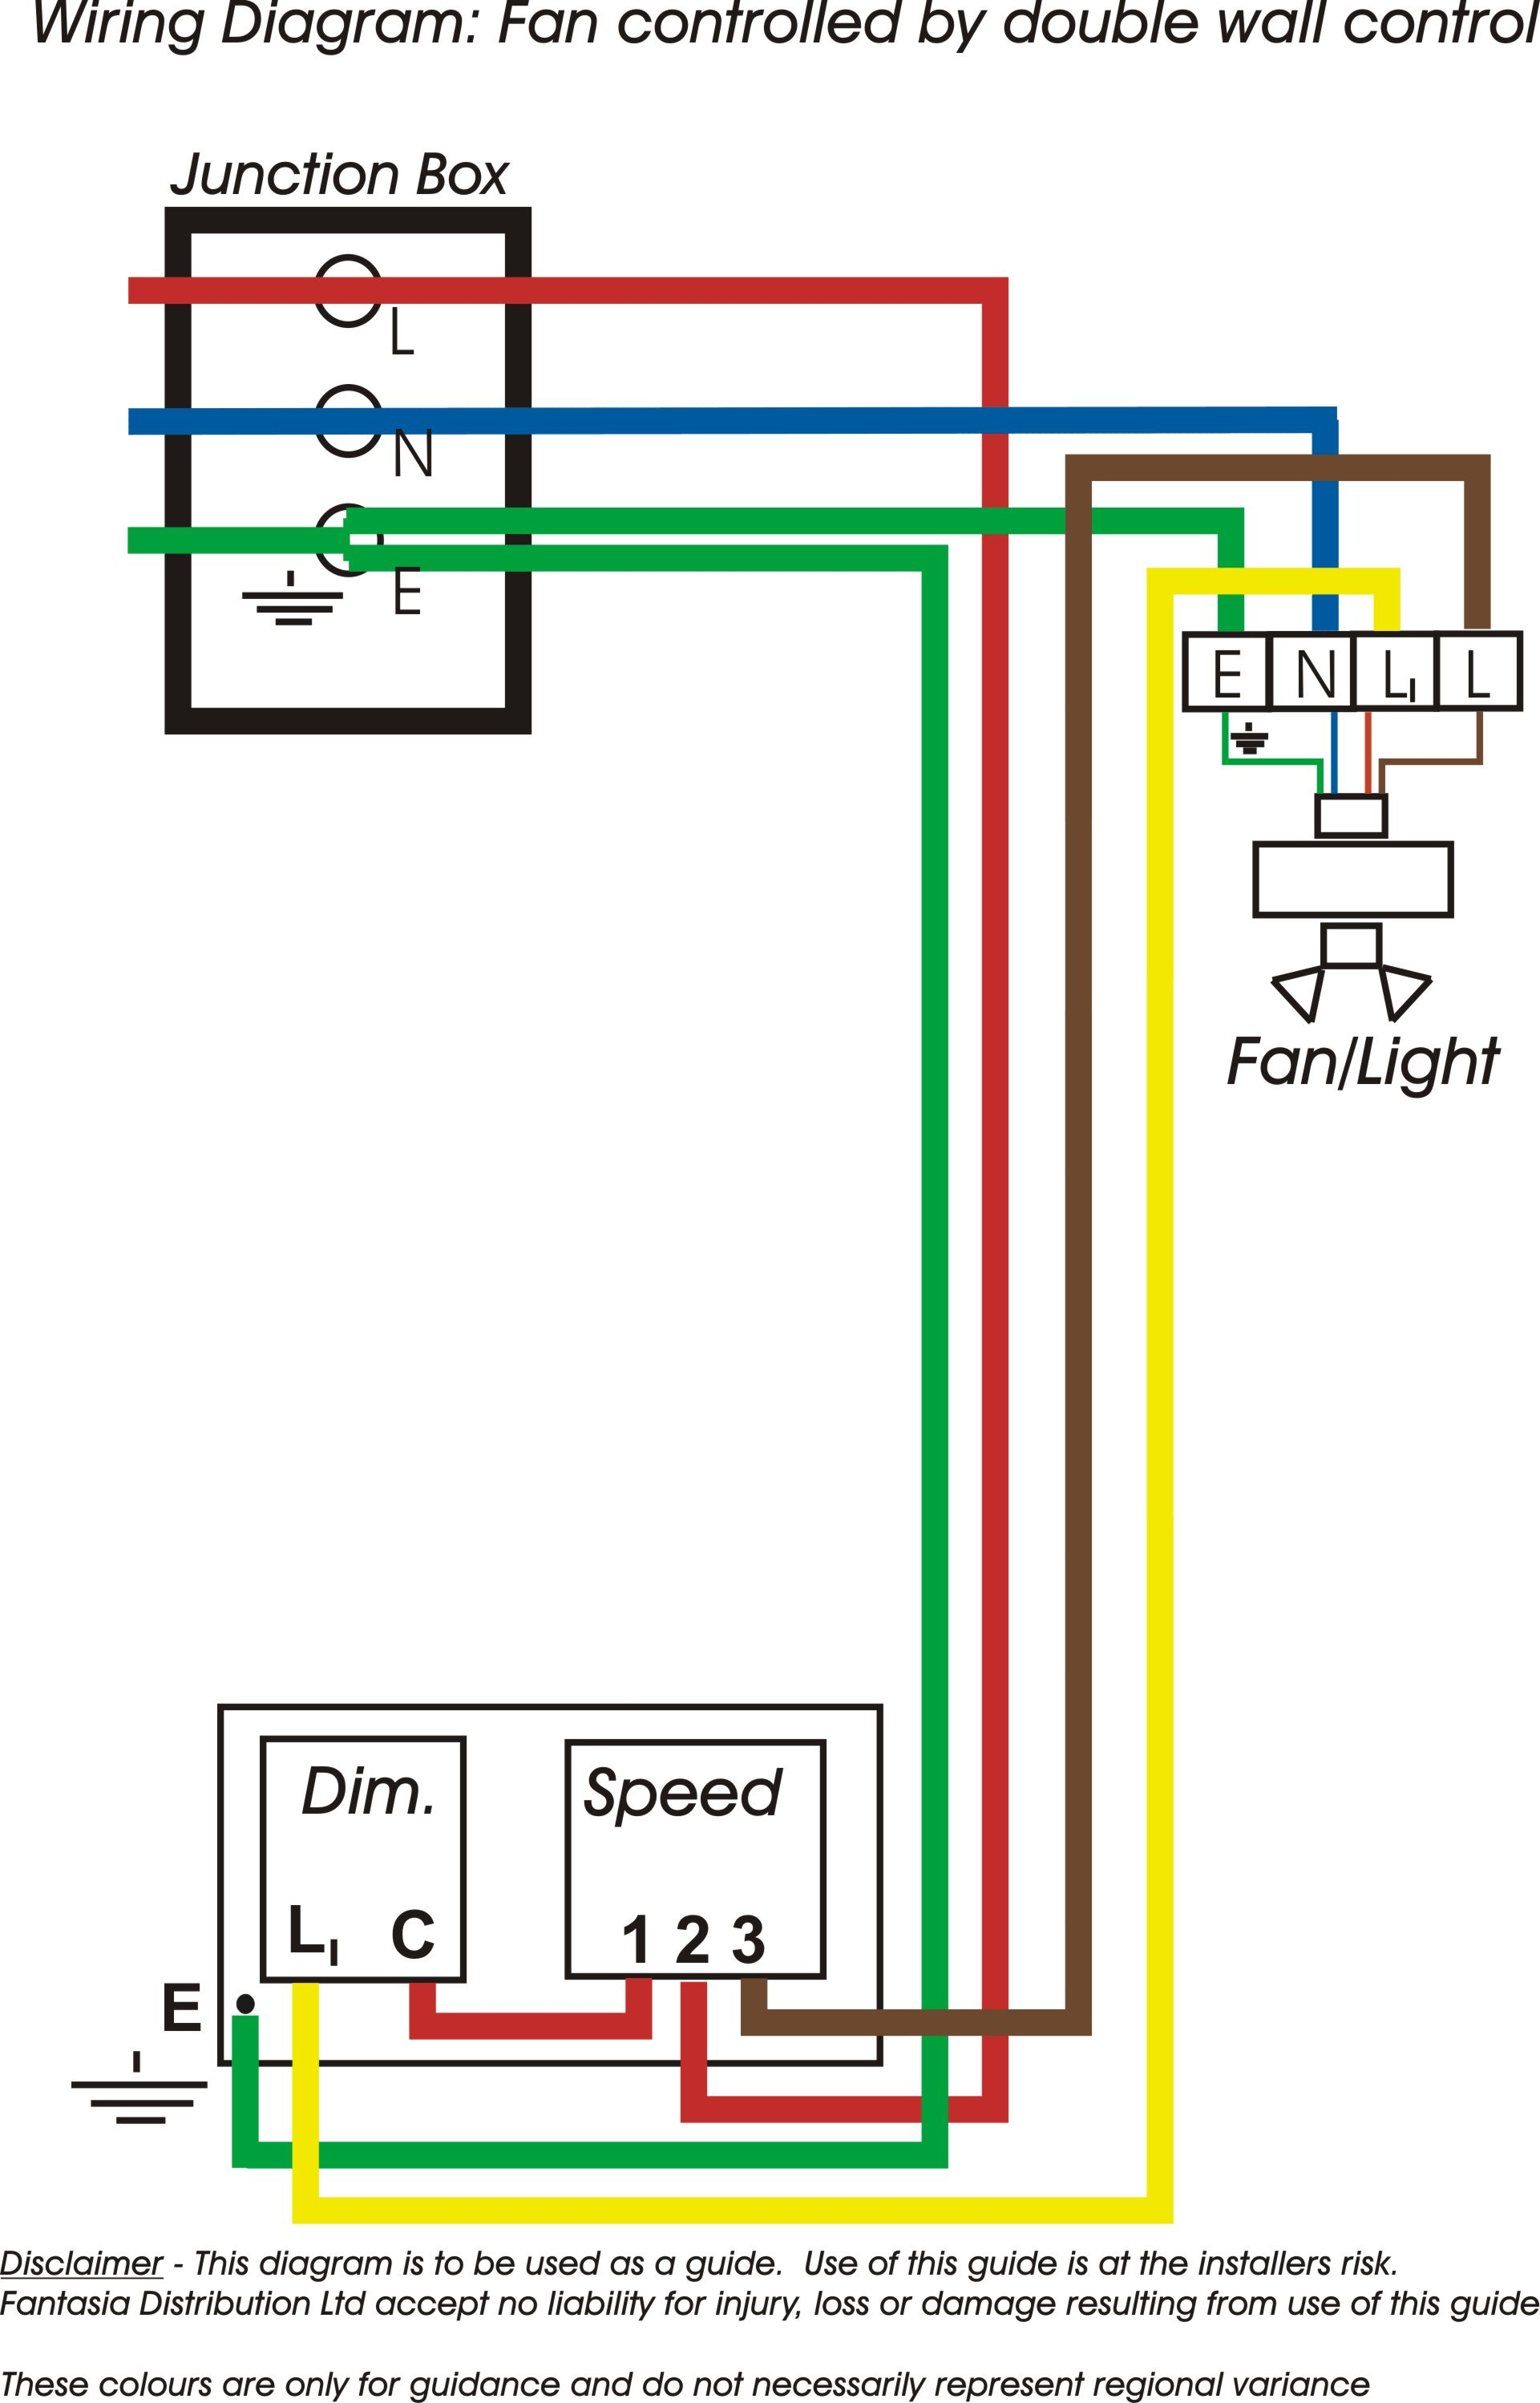 Wiring Diagrams Best Of Ceiling Fan Wire Diagram - Wiring Diagrams - Fan Wiring Diagram